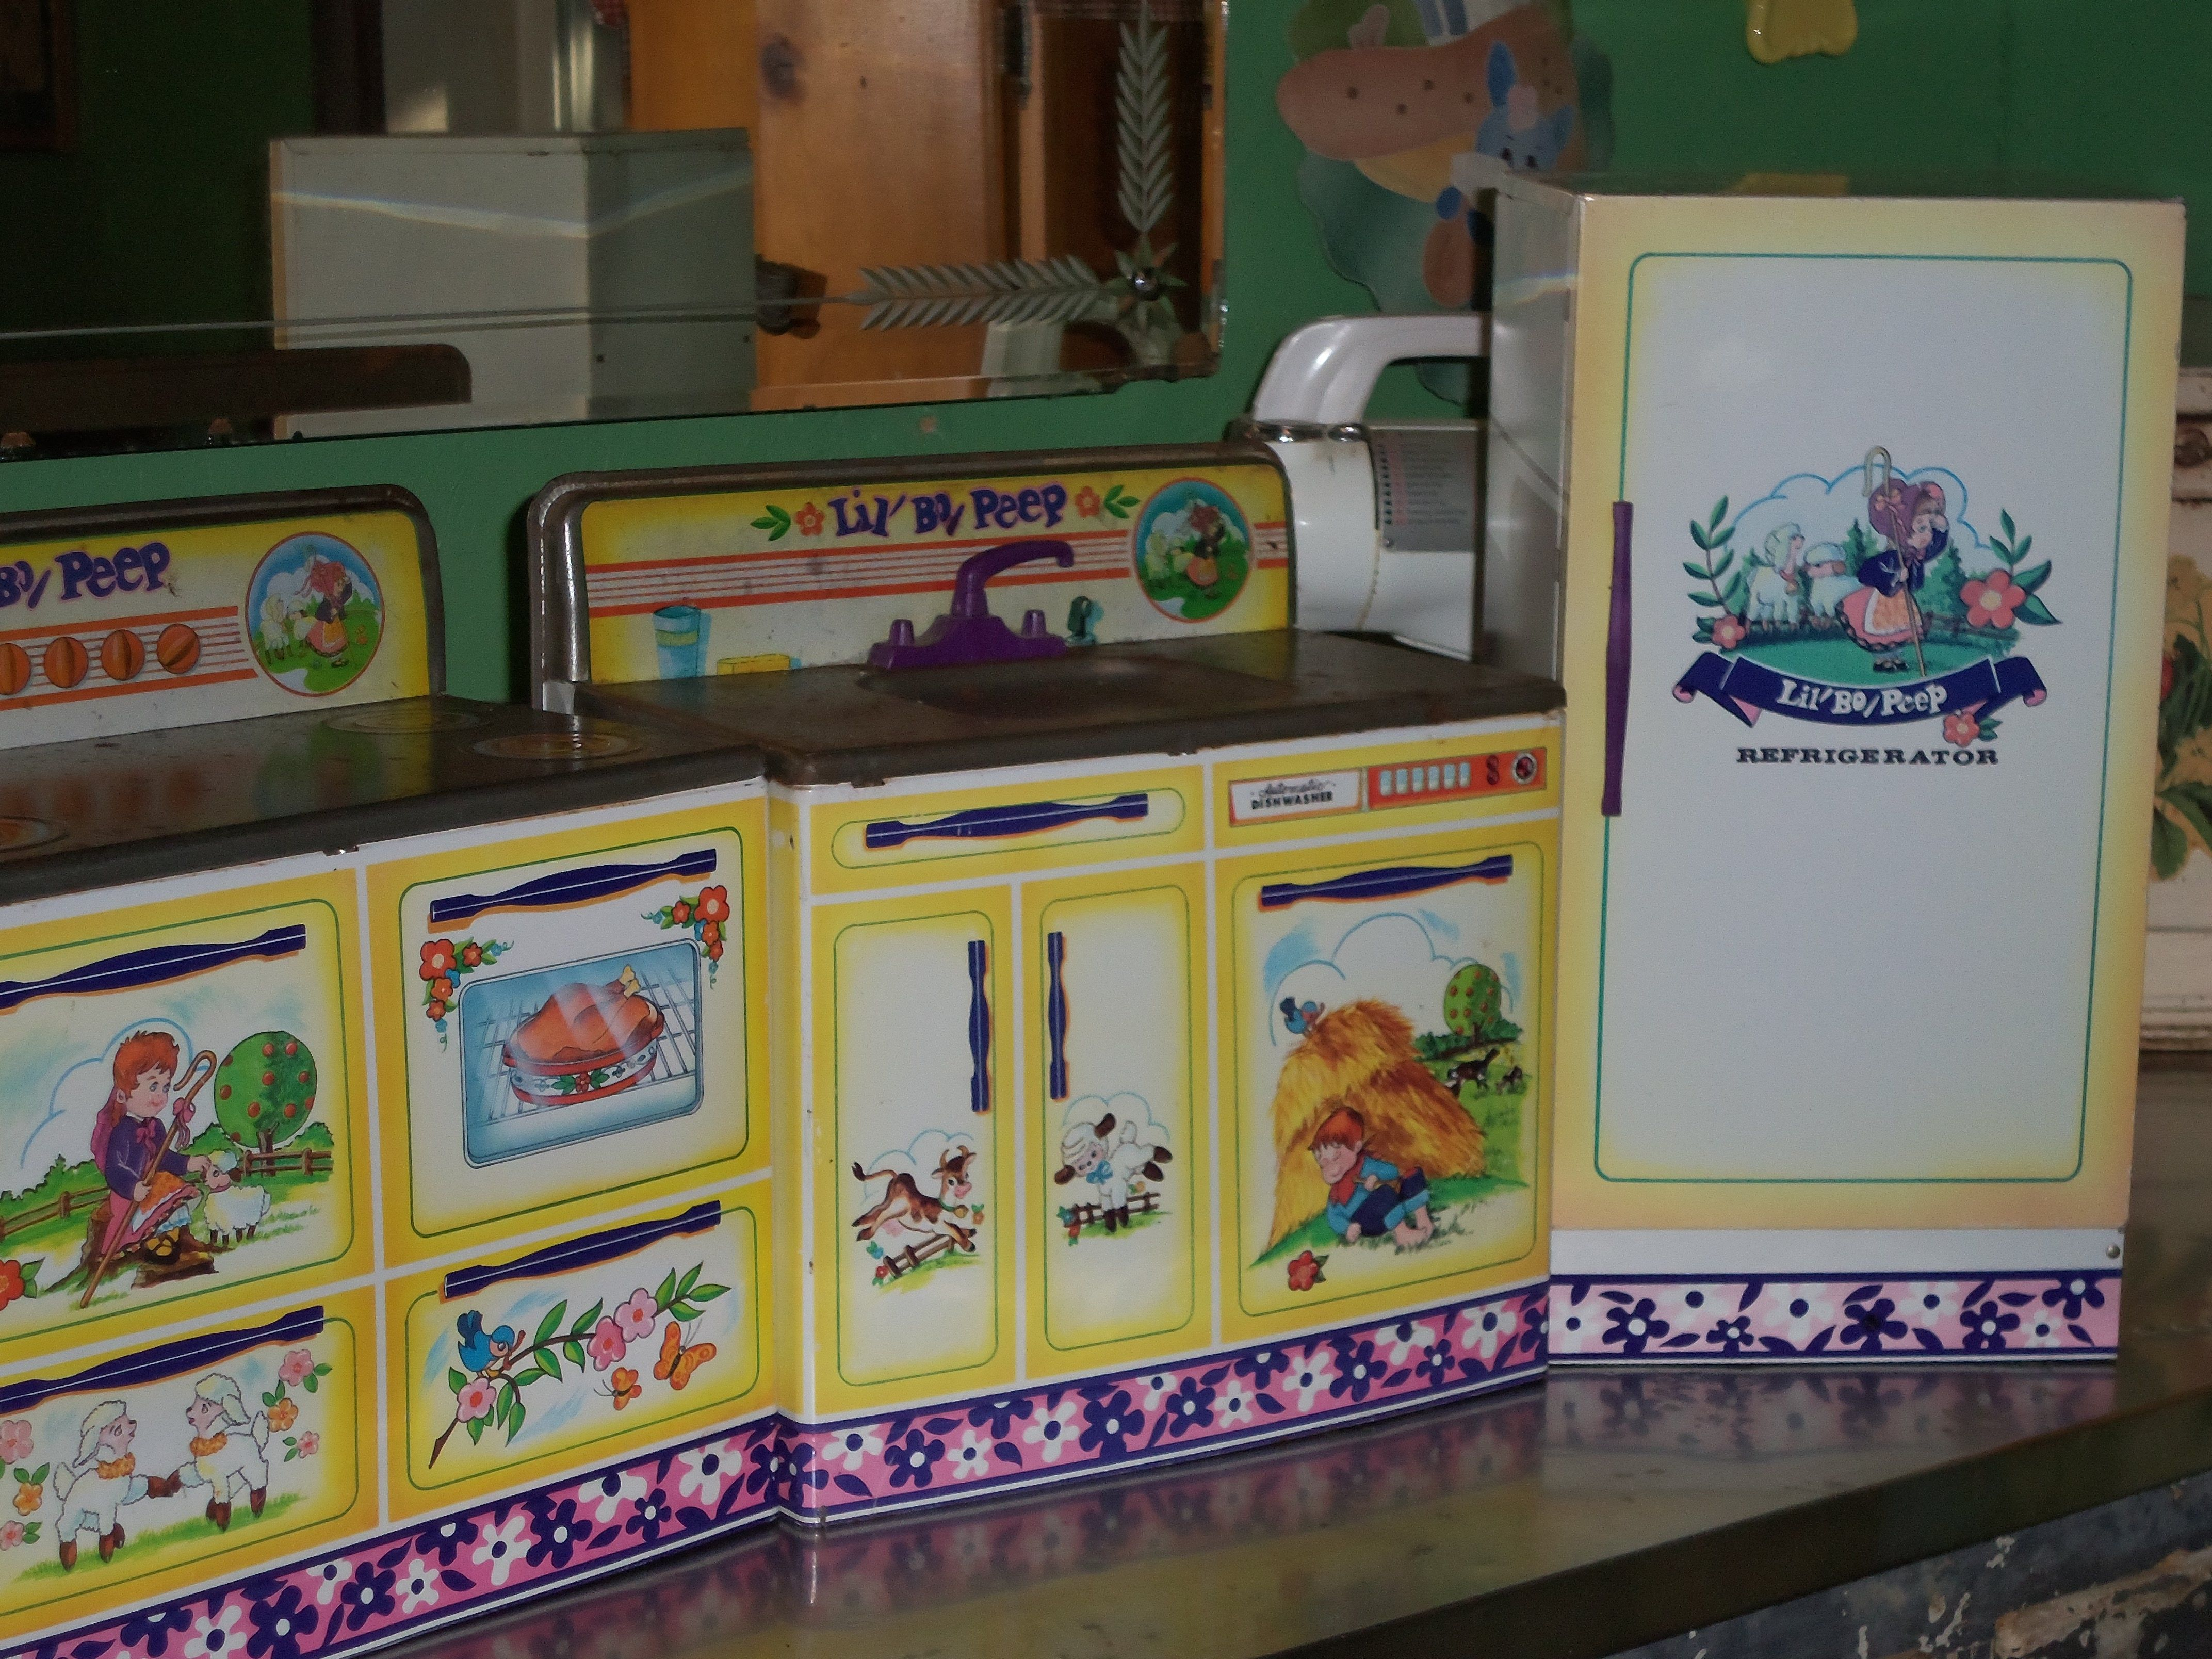 Kitchen Set Vintage Lilbopeep By Wolverine Toy It Features A Little Bo Peep Nursery Rhyme Theme With Flower Bird And Butterfly Images